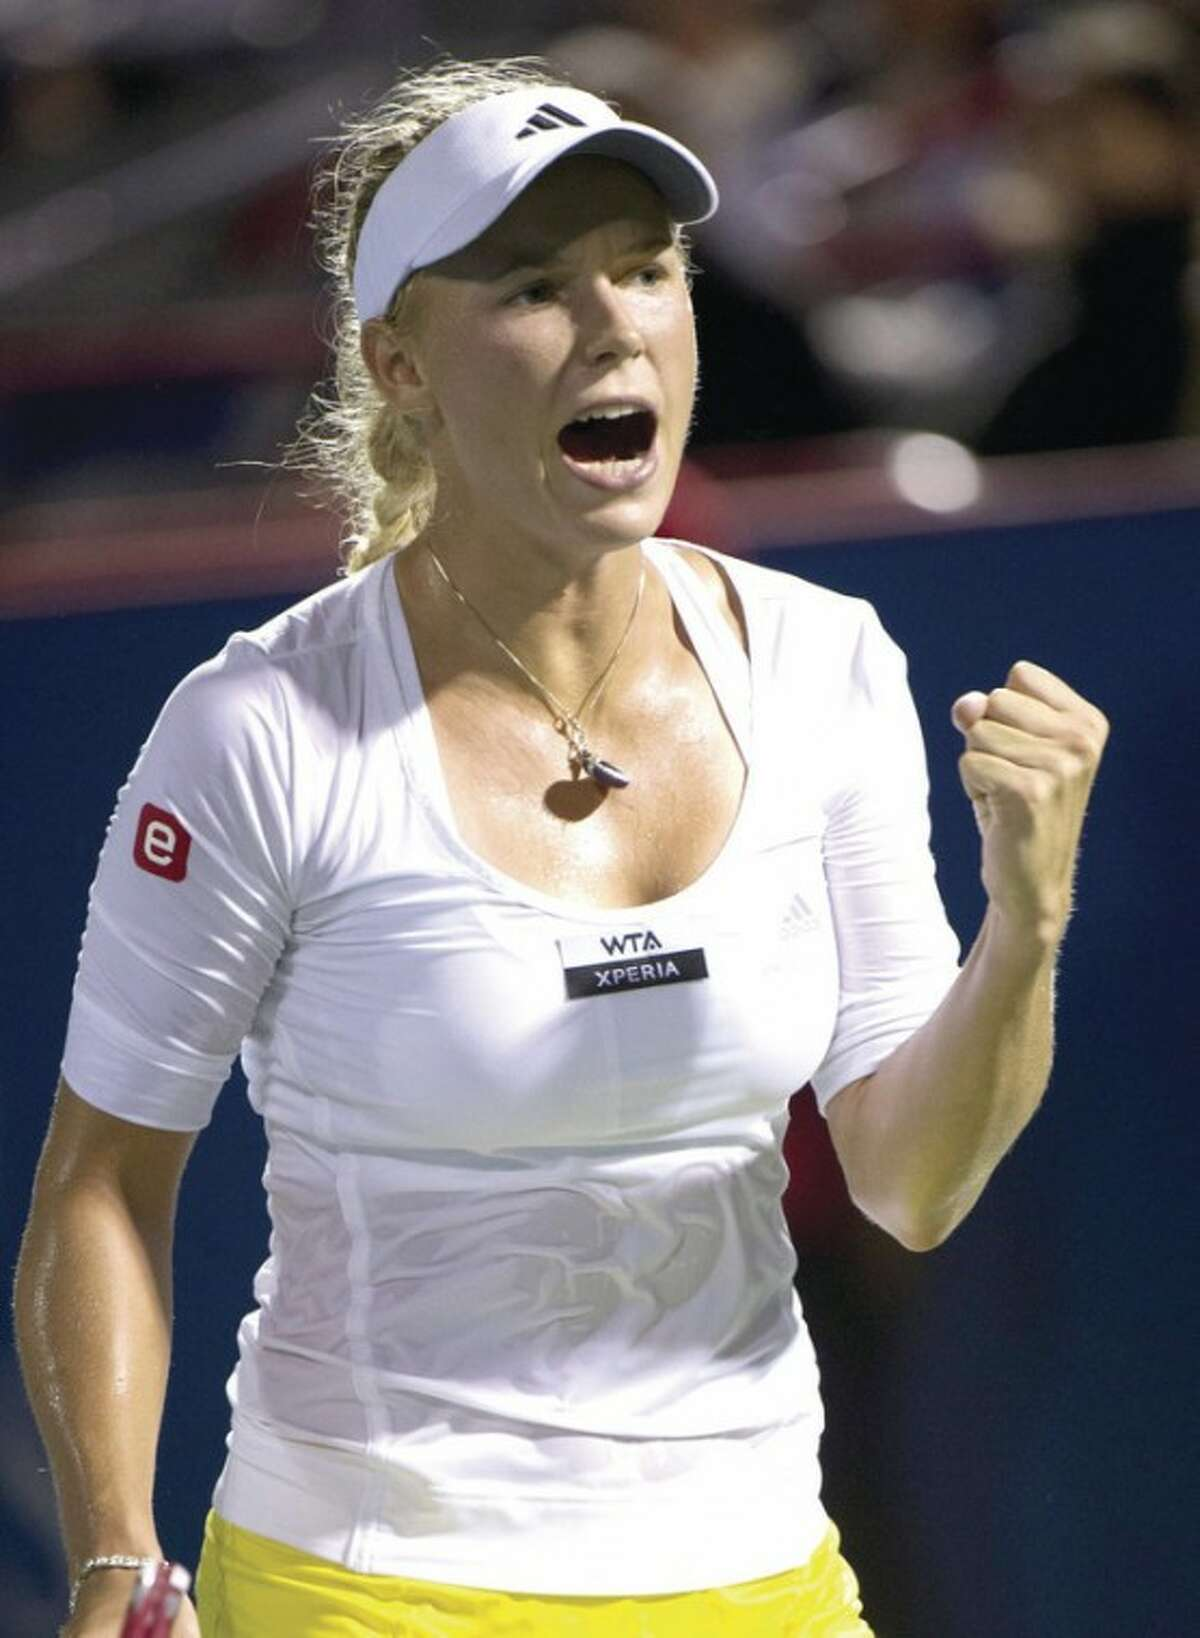 AP photo Caroline Wozniacki, from Denmark, celebrates a point over during a quarterfinal match at the Rogers Cup women's tennis tournament earlier this month. This week, Wozniacki is looking to win her fifth New Haven Open and won her opening match on Monday.